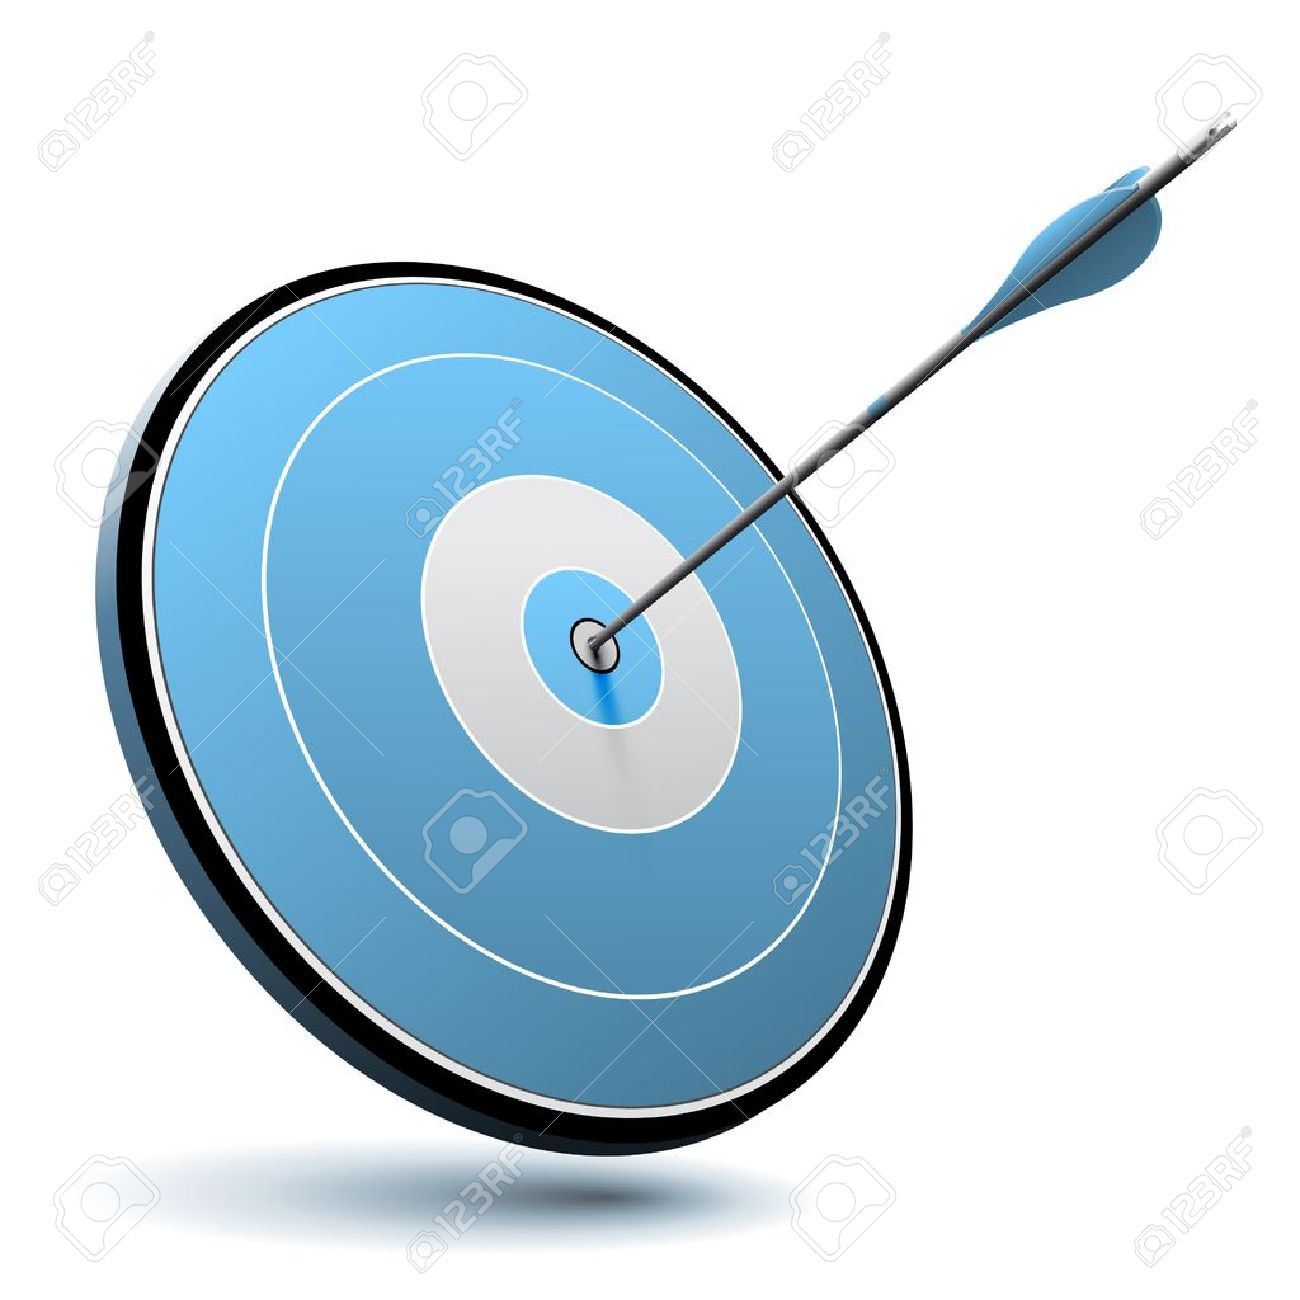 20304381-One-arrow-hit-the-center-of-a-blue-target-vector-image-suitable-for-business-or-marketing-logo--Stock-Vector dans Cuchon